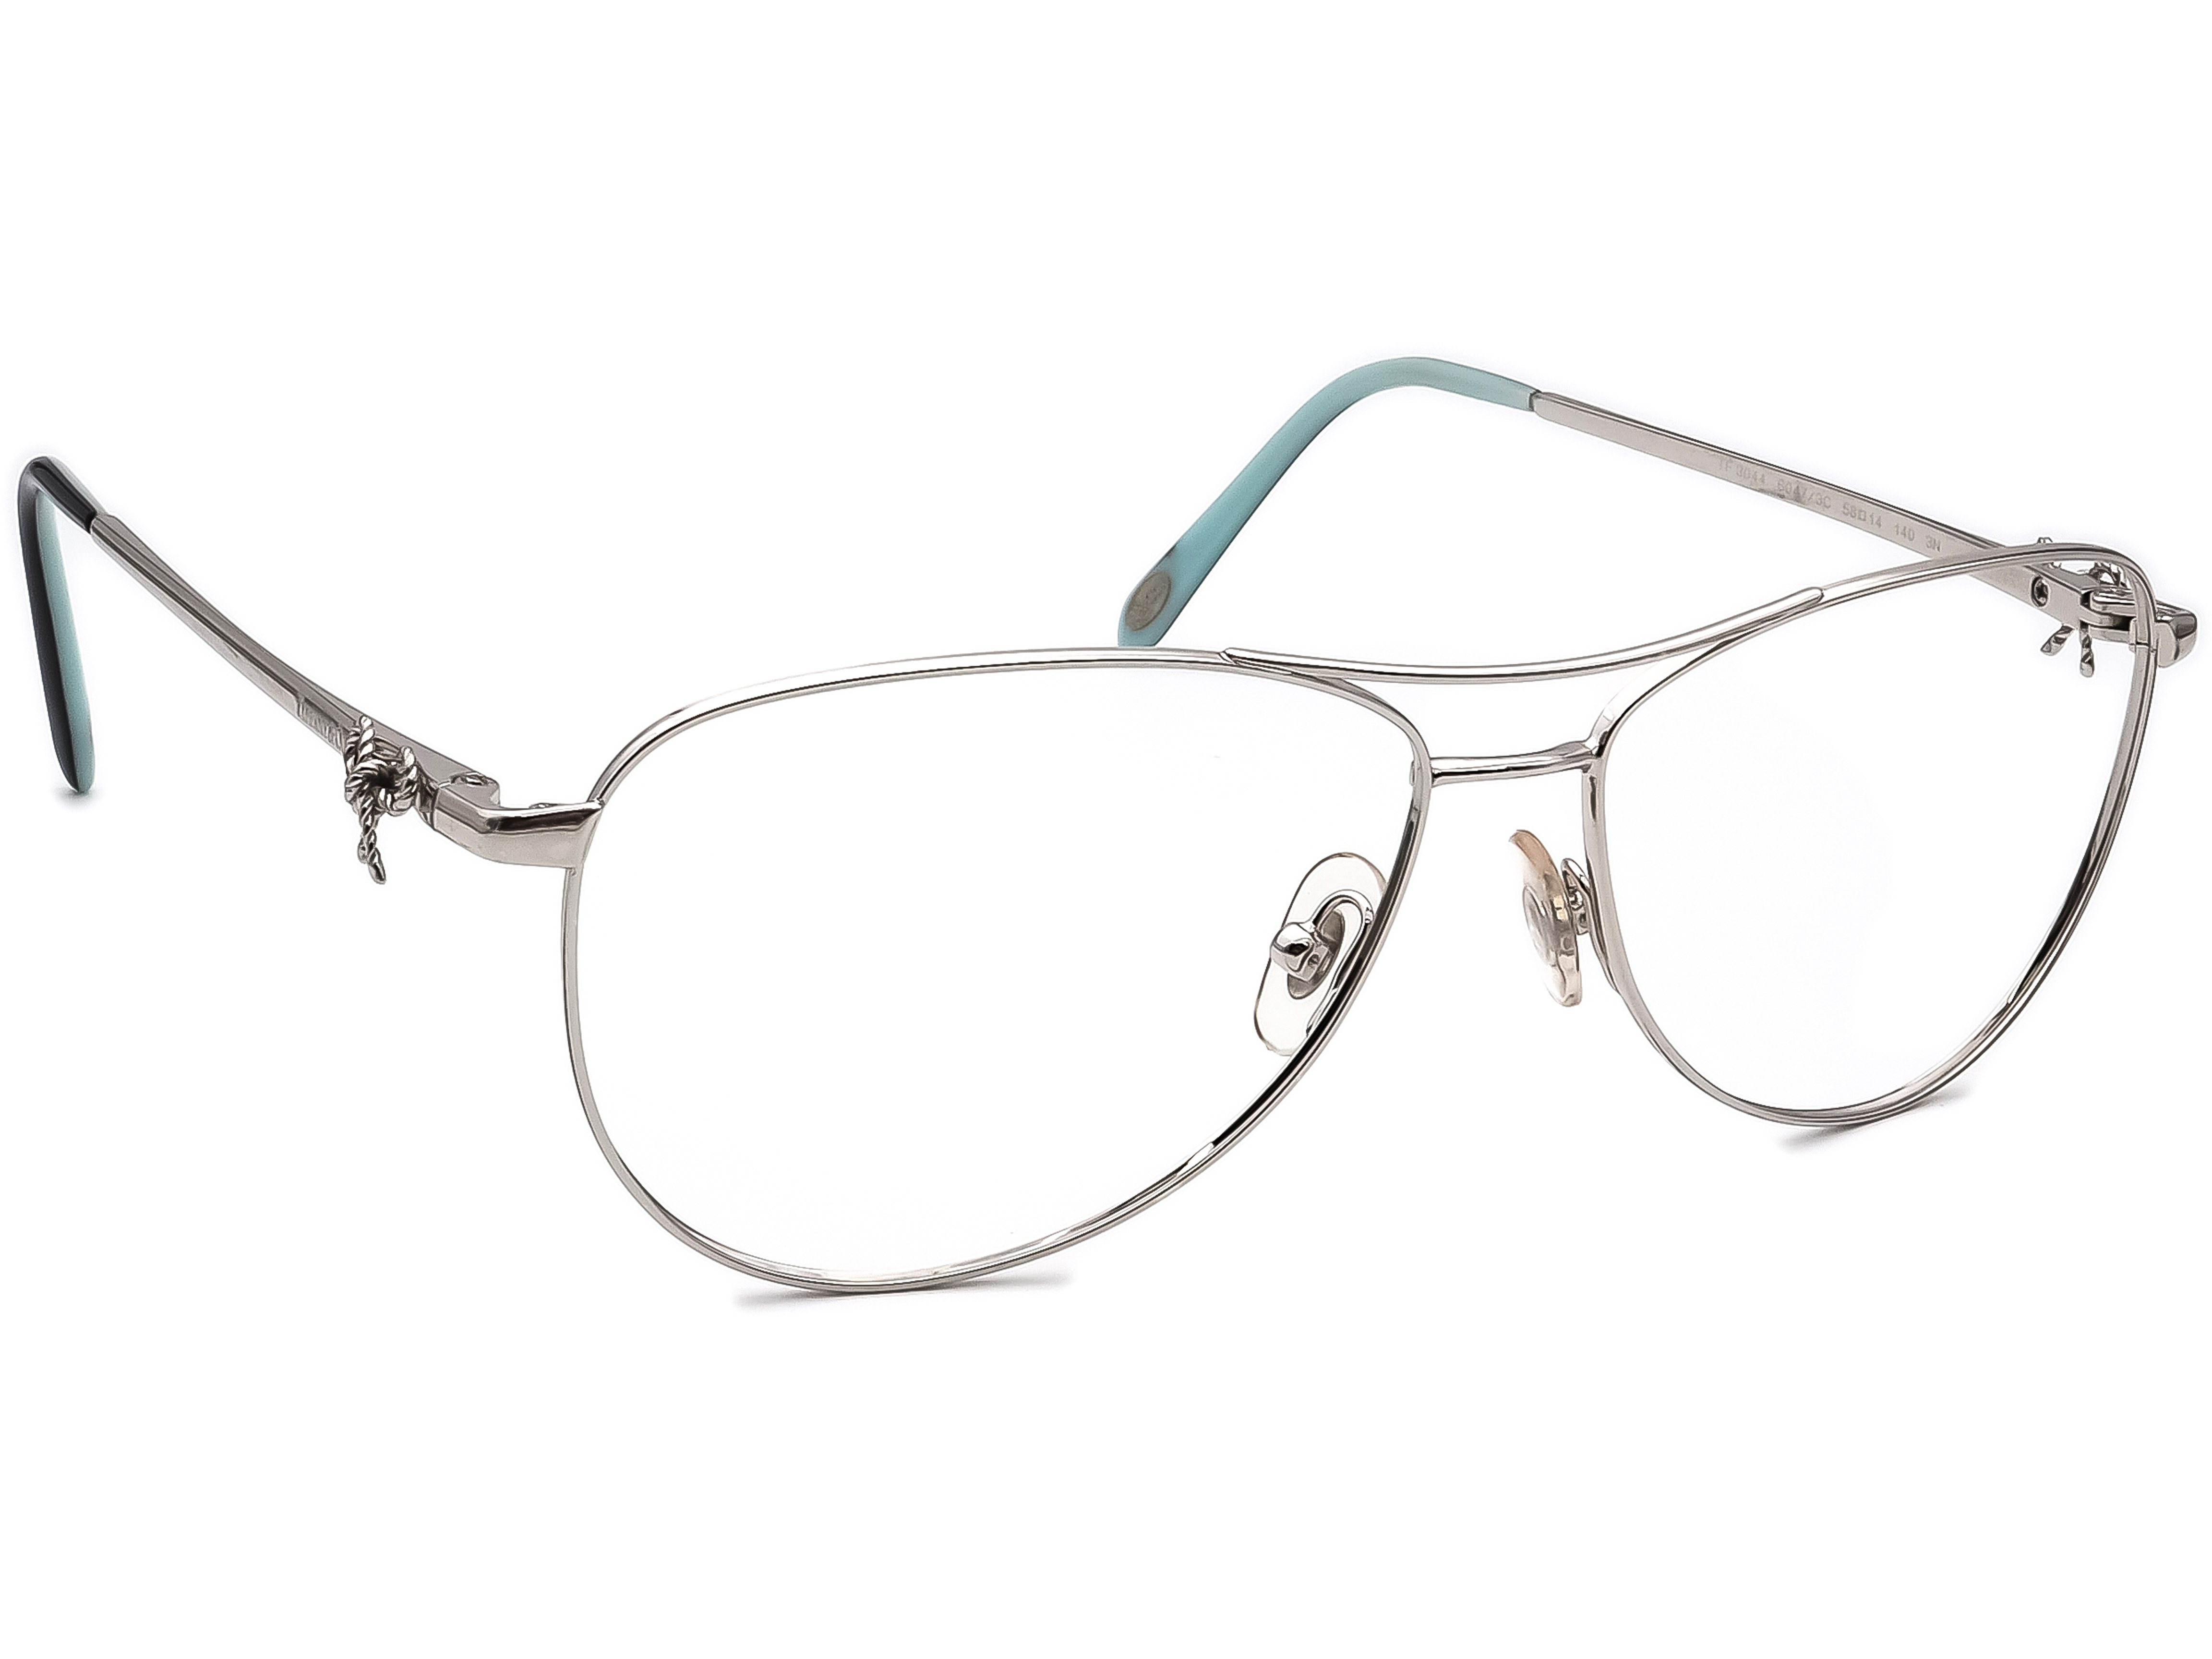 Tiffany & Co. TF 3044 6047/3C Sunglasses Frame Only